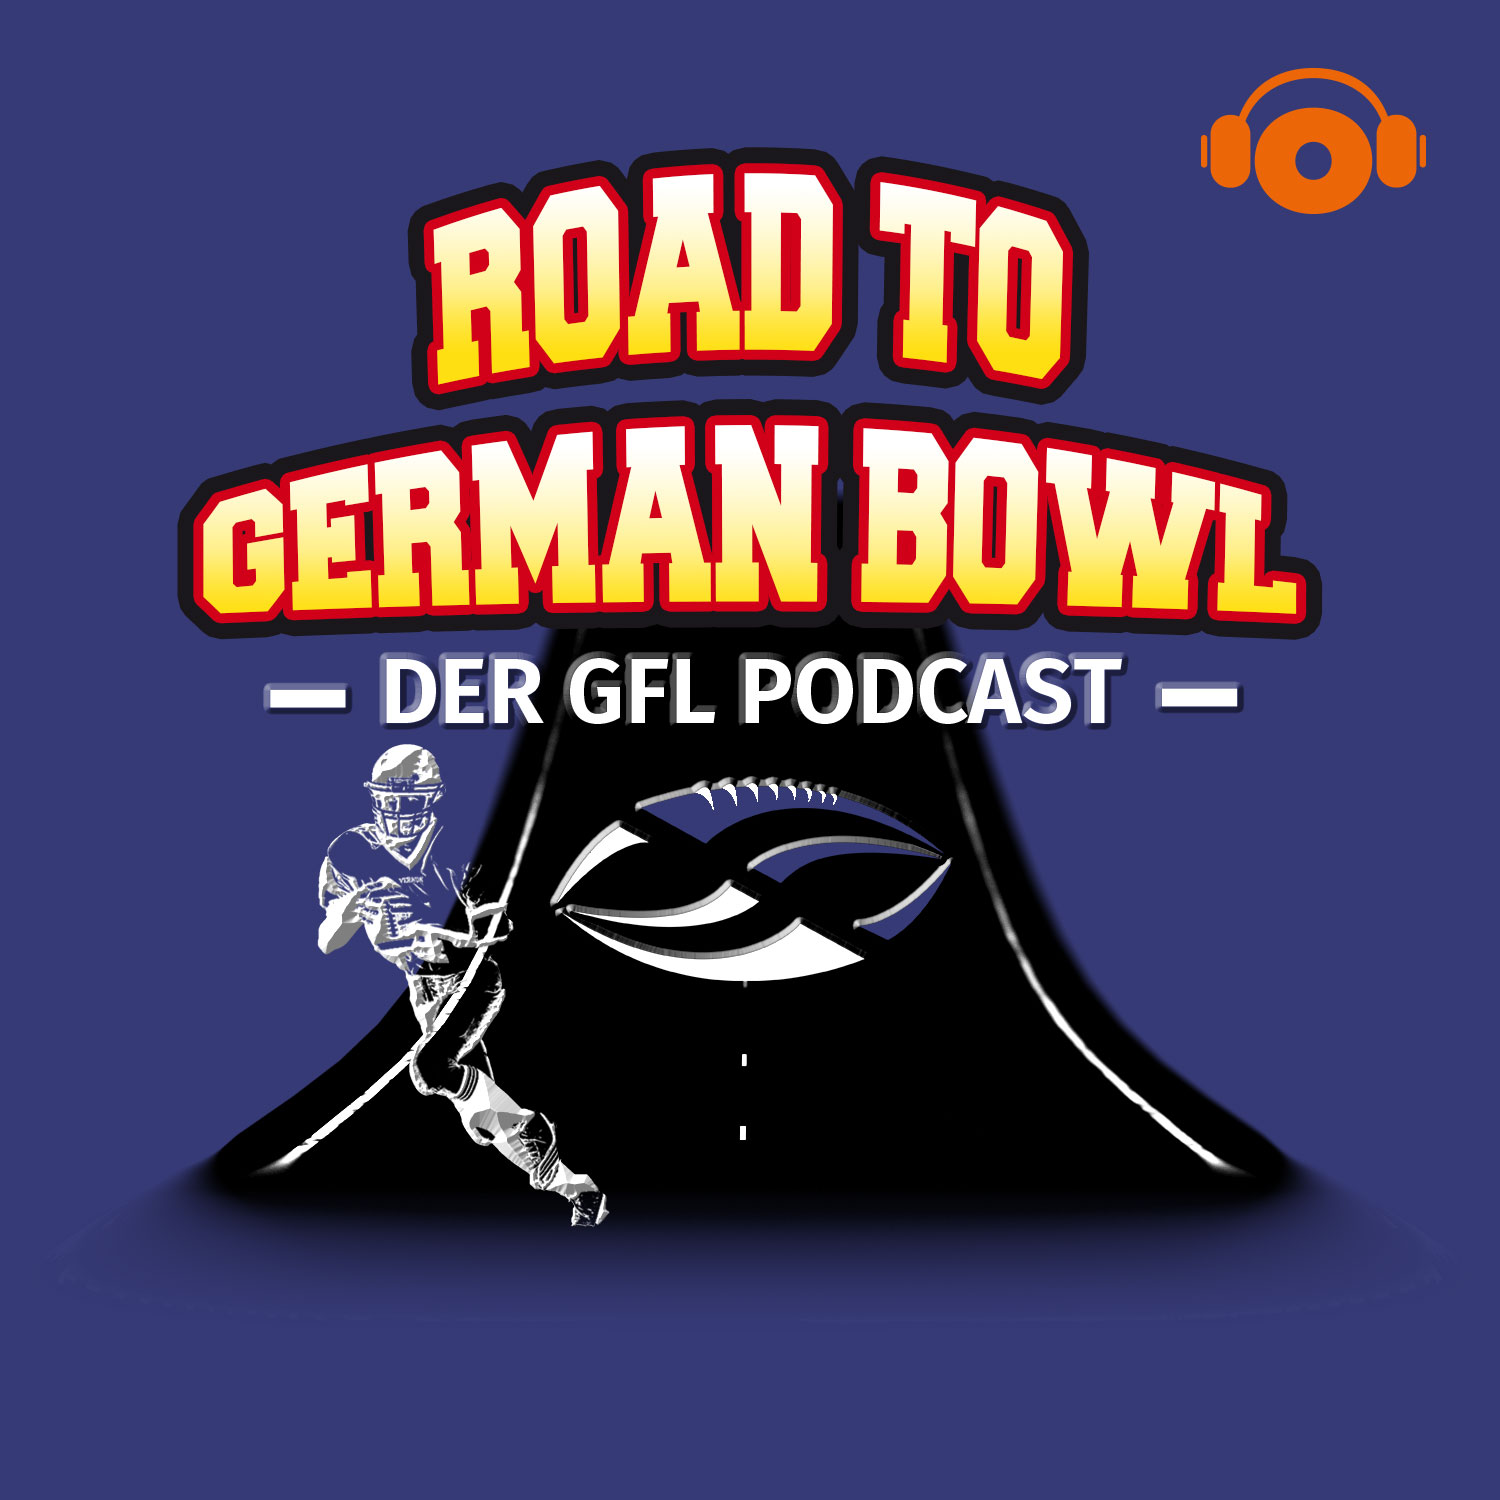 ROAD TO GERMAN BOWL